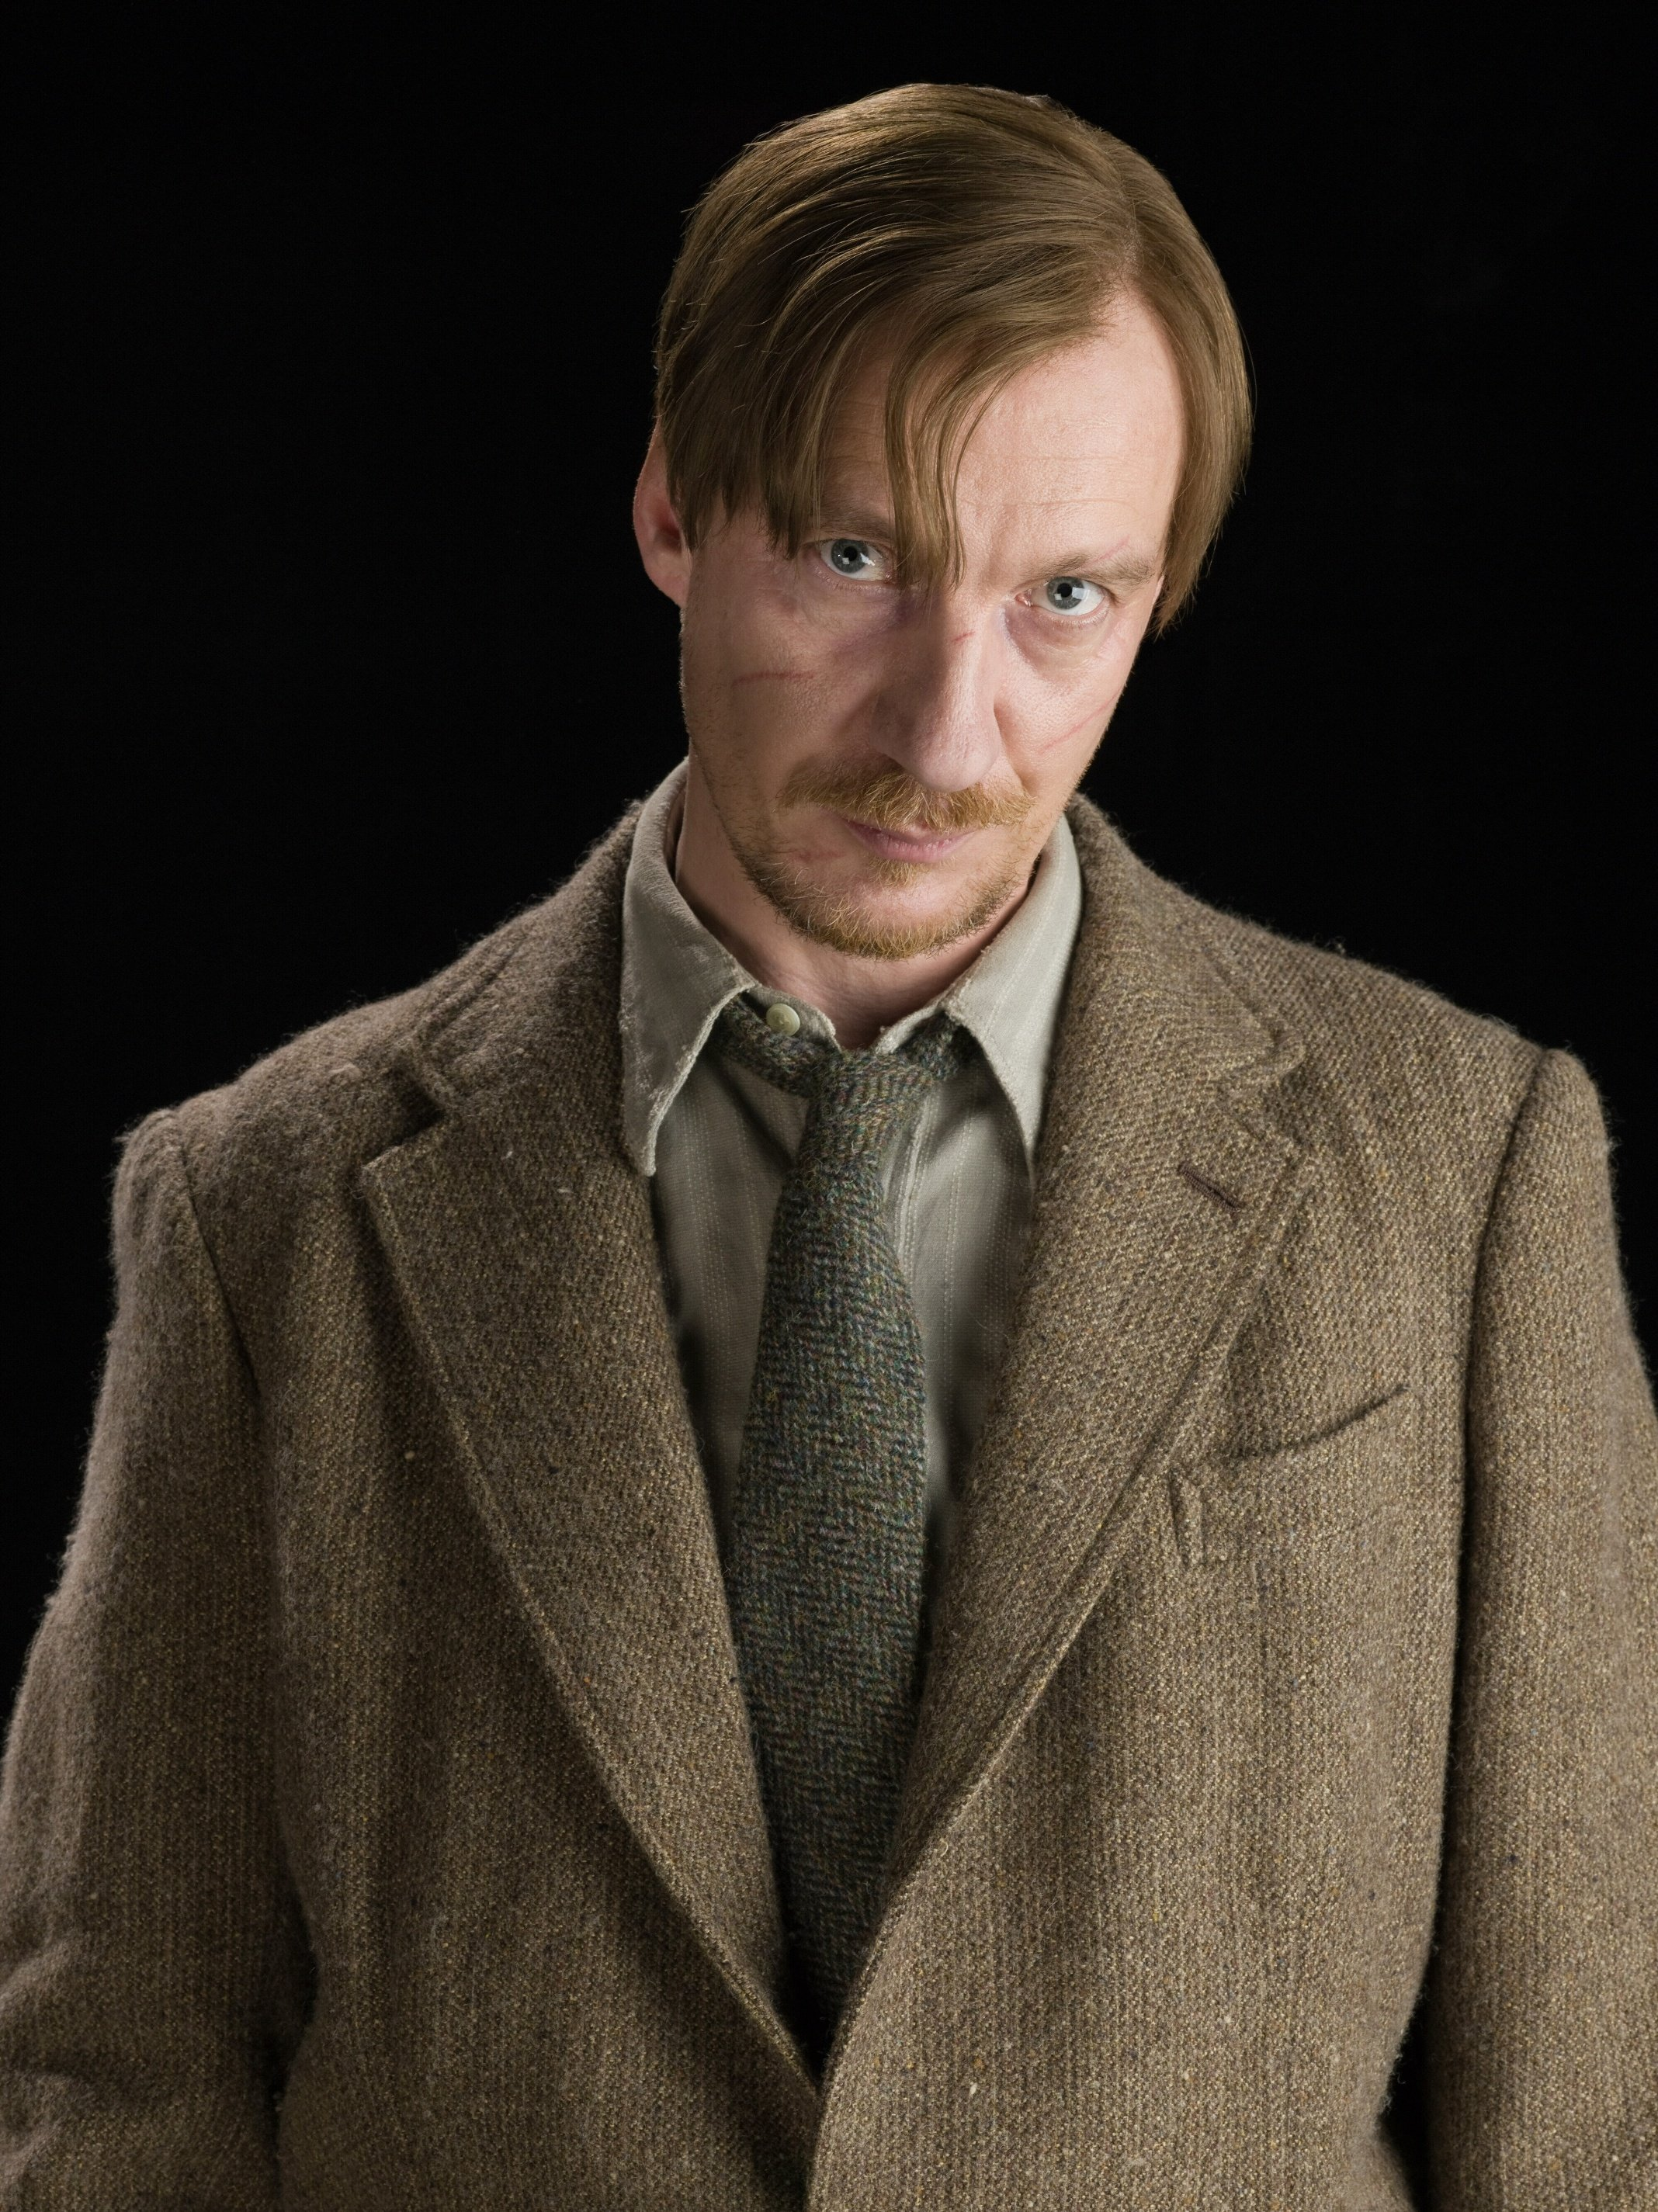 http://vignette2.wikia.nocookie.net/harrypotter/images/4/46/Remus_Lupin_(HBP_promo)_1.jpg/revision/latest?cb=20090817201006